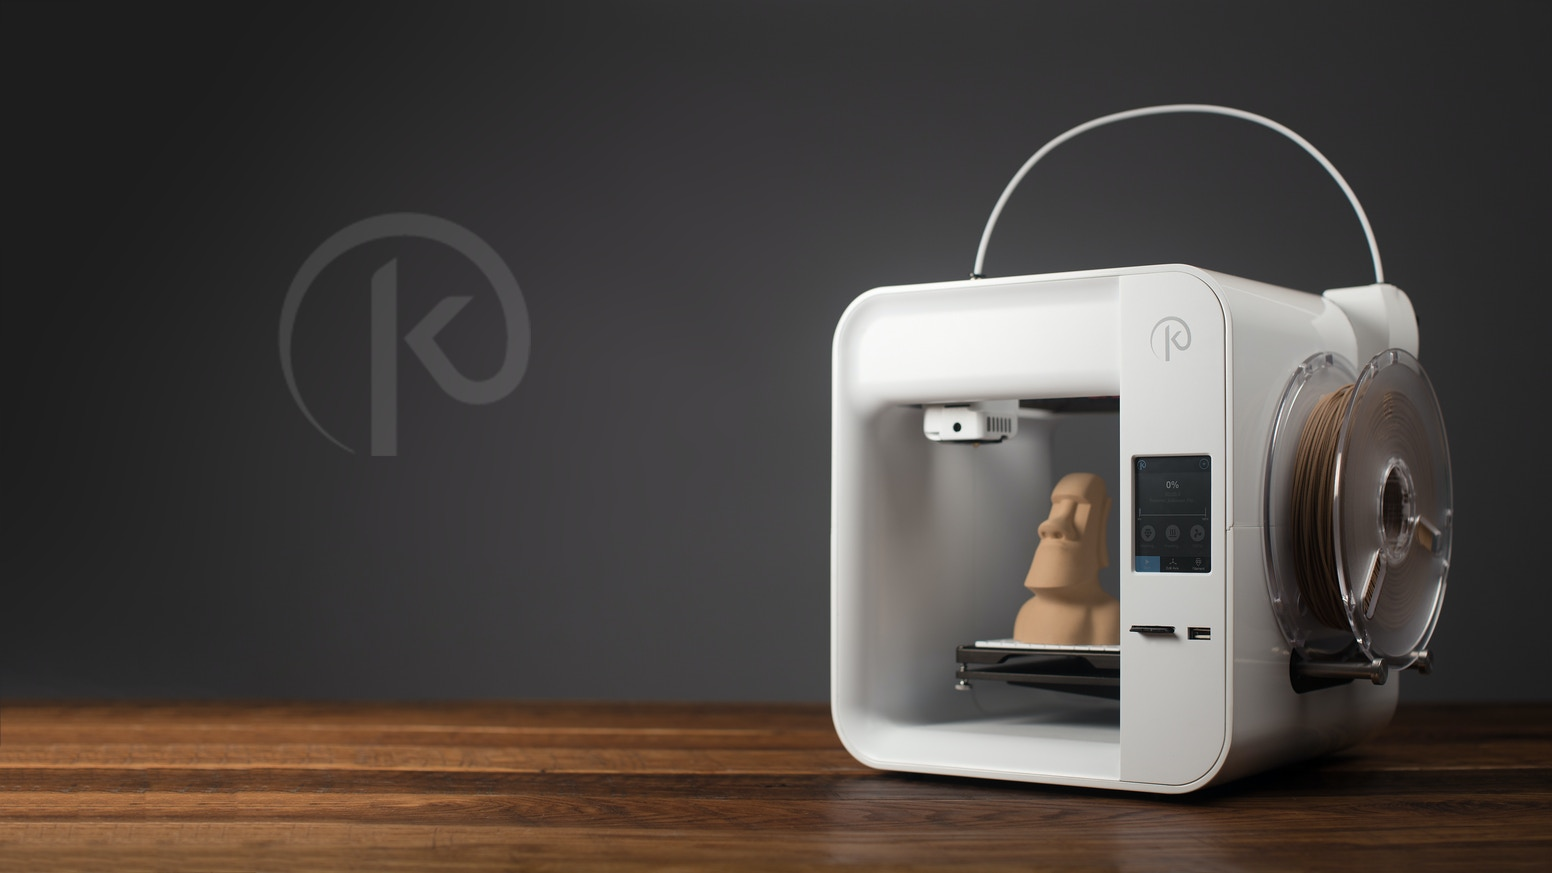 For the 2nd year in a row, Kodama is raising the standard for 3D printers. Obsidian is plug & print and has it all. Starting at $99.